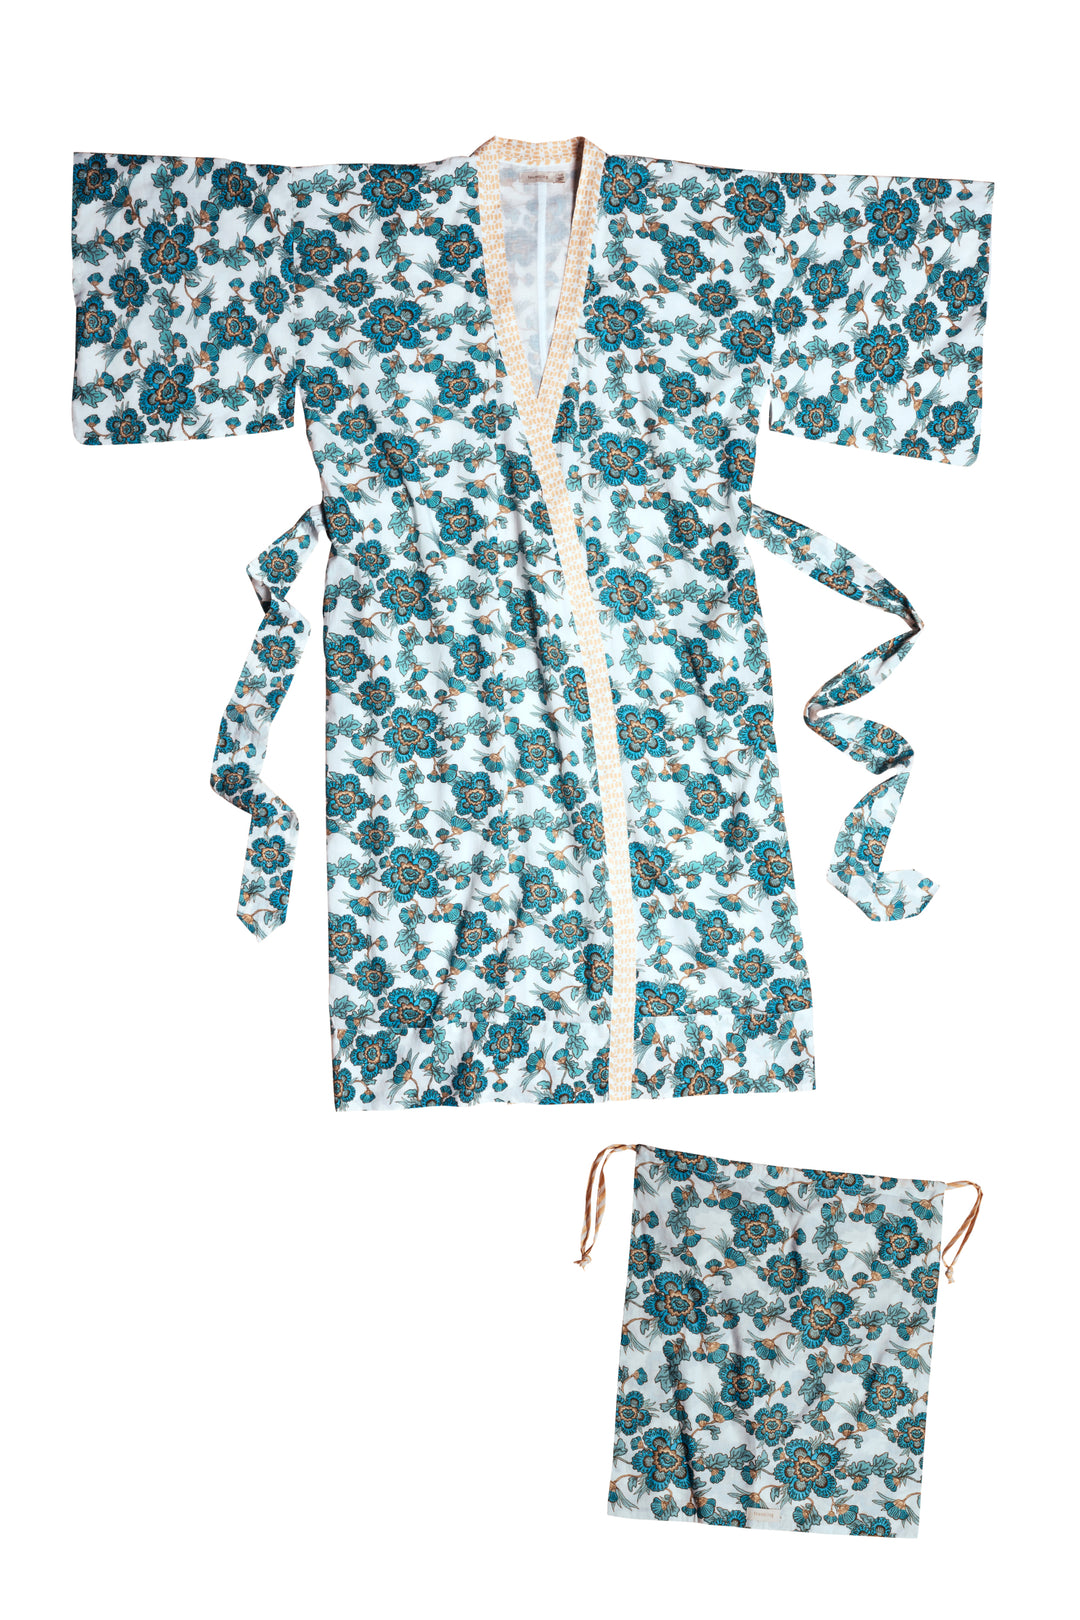 jaipur block print cotton kimono nightgown dressing gown